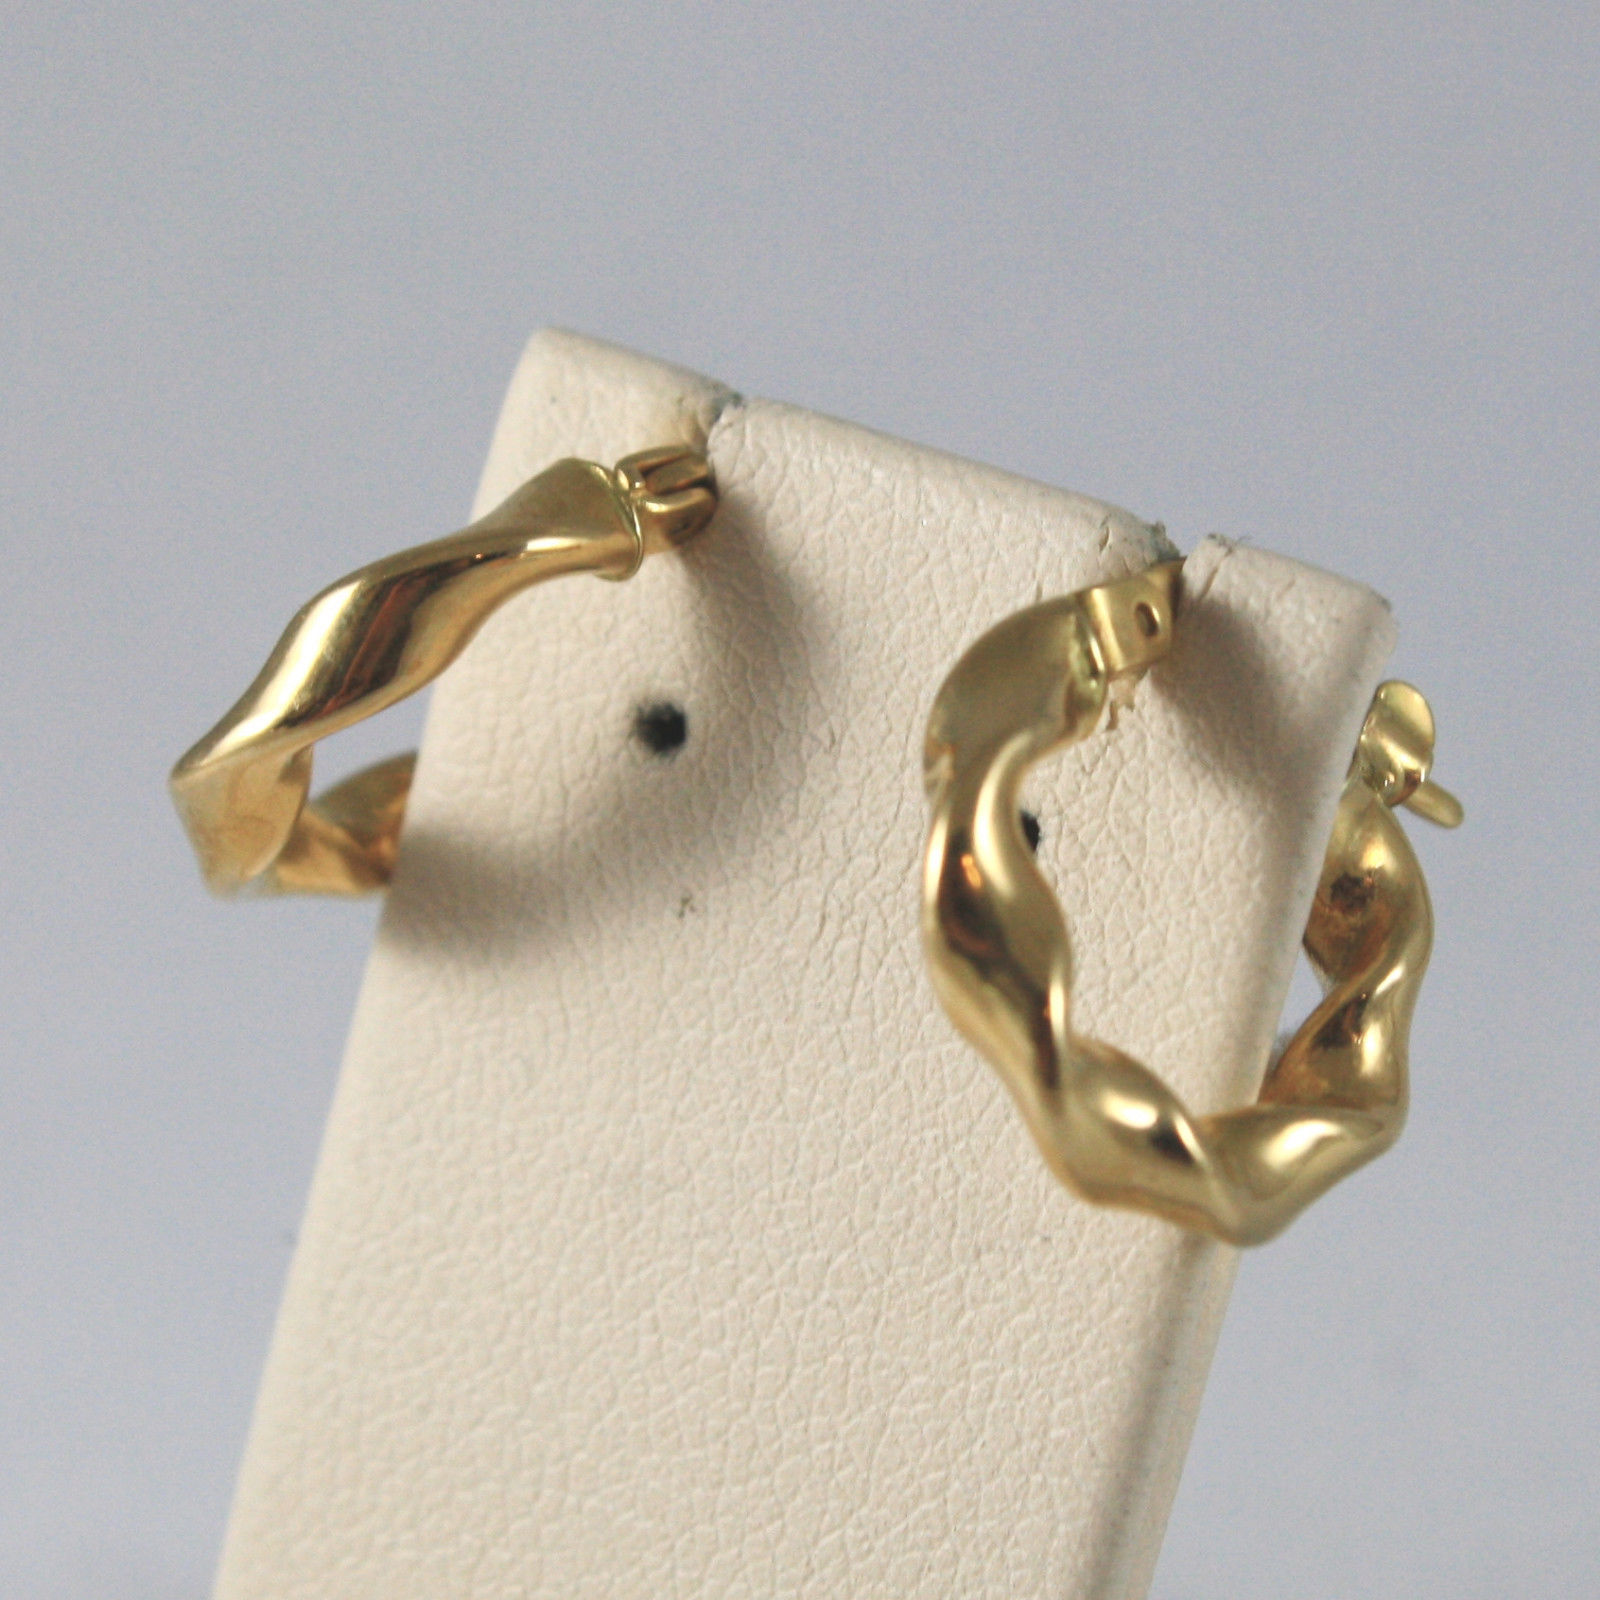 SOLID 18KT. YELLOW GOLD CIRCLE EARRINGS, WITH BRAID WORKED,